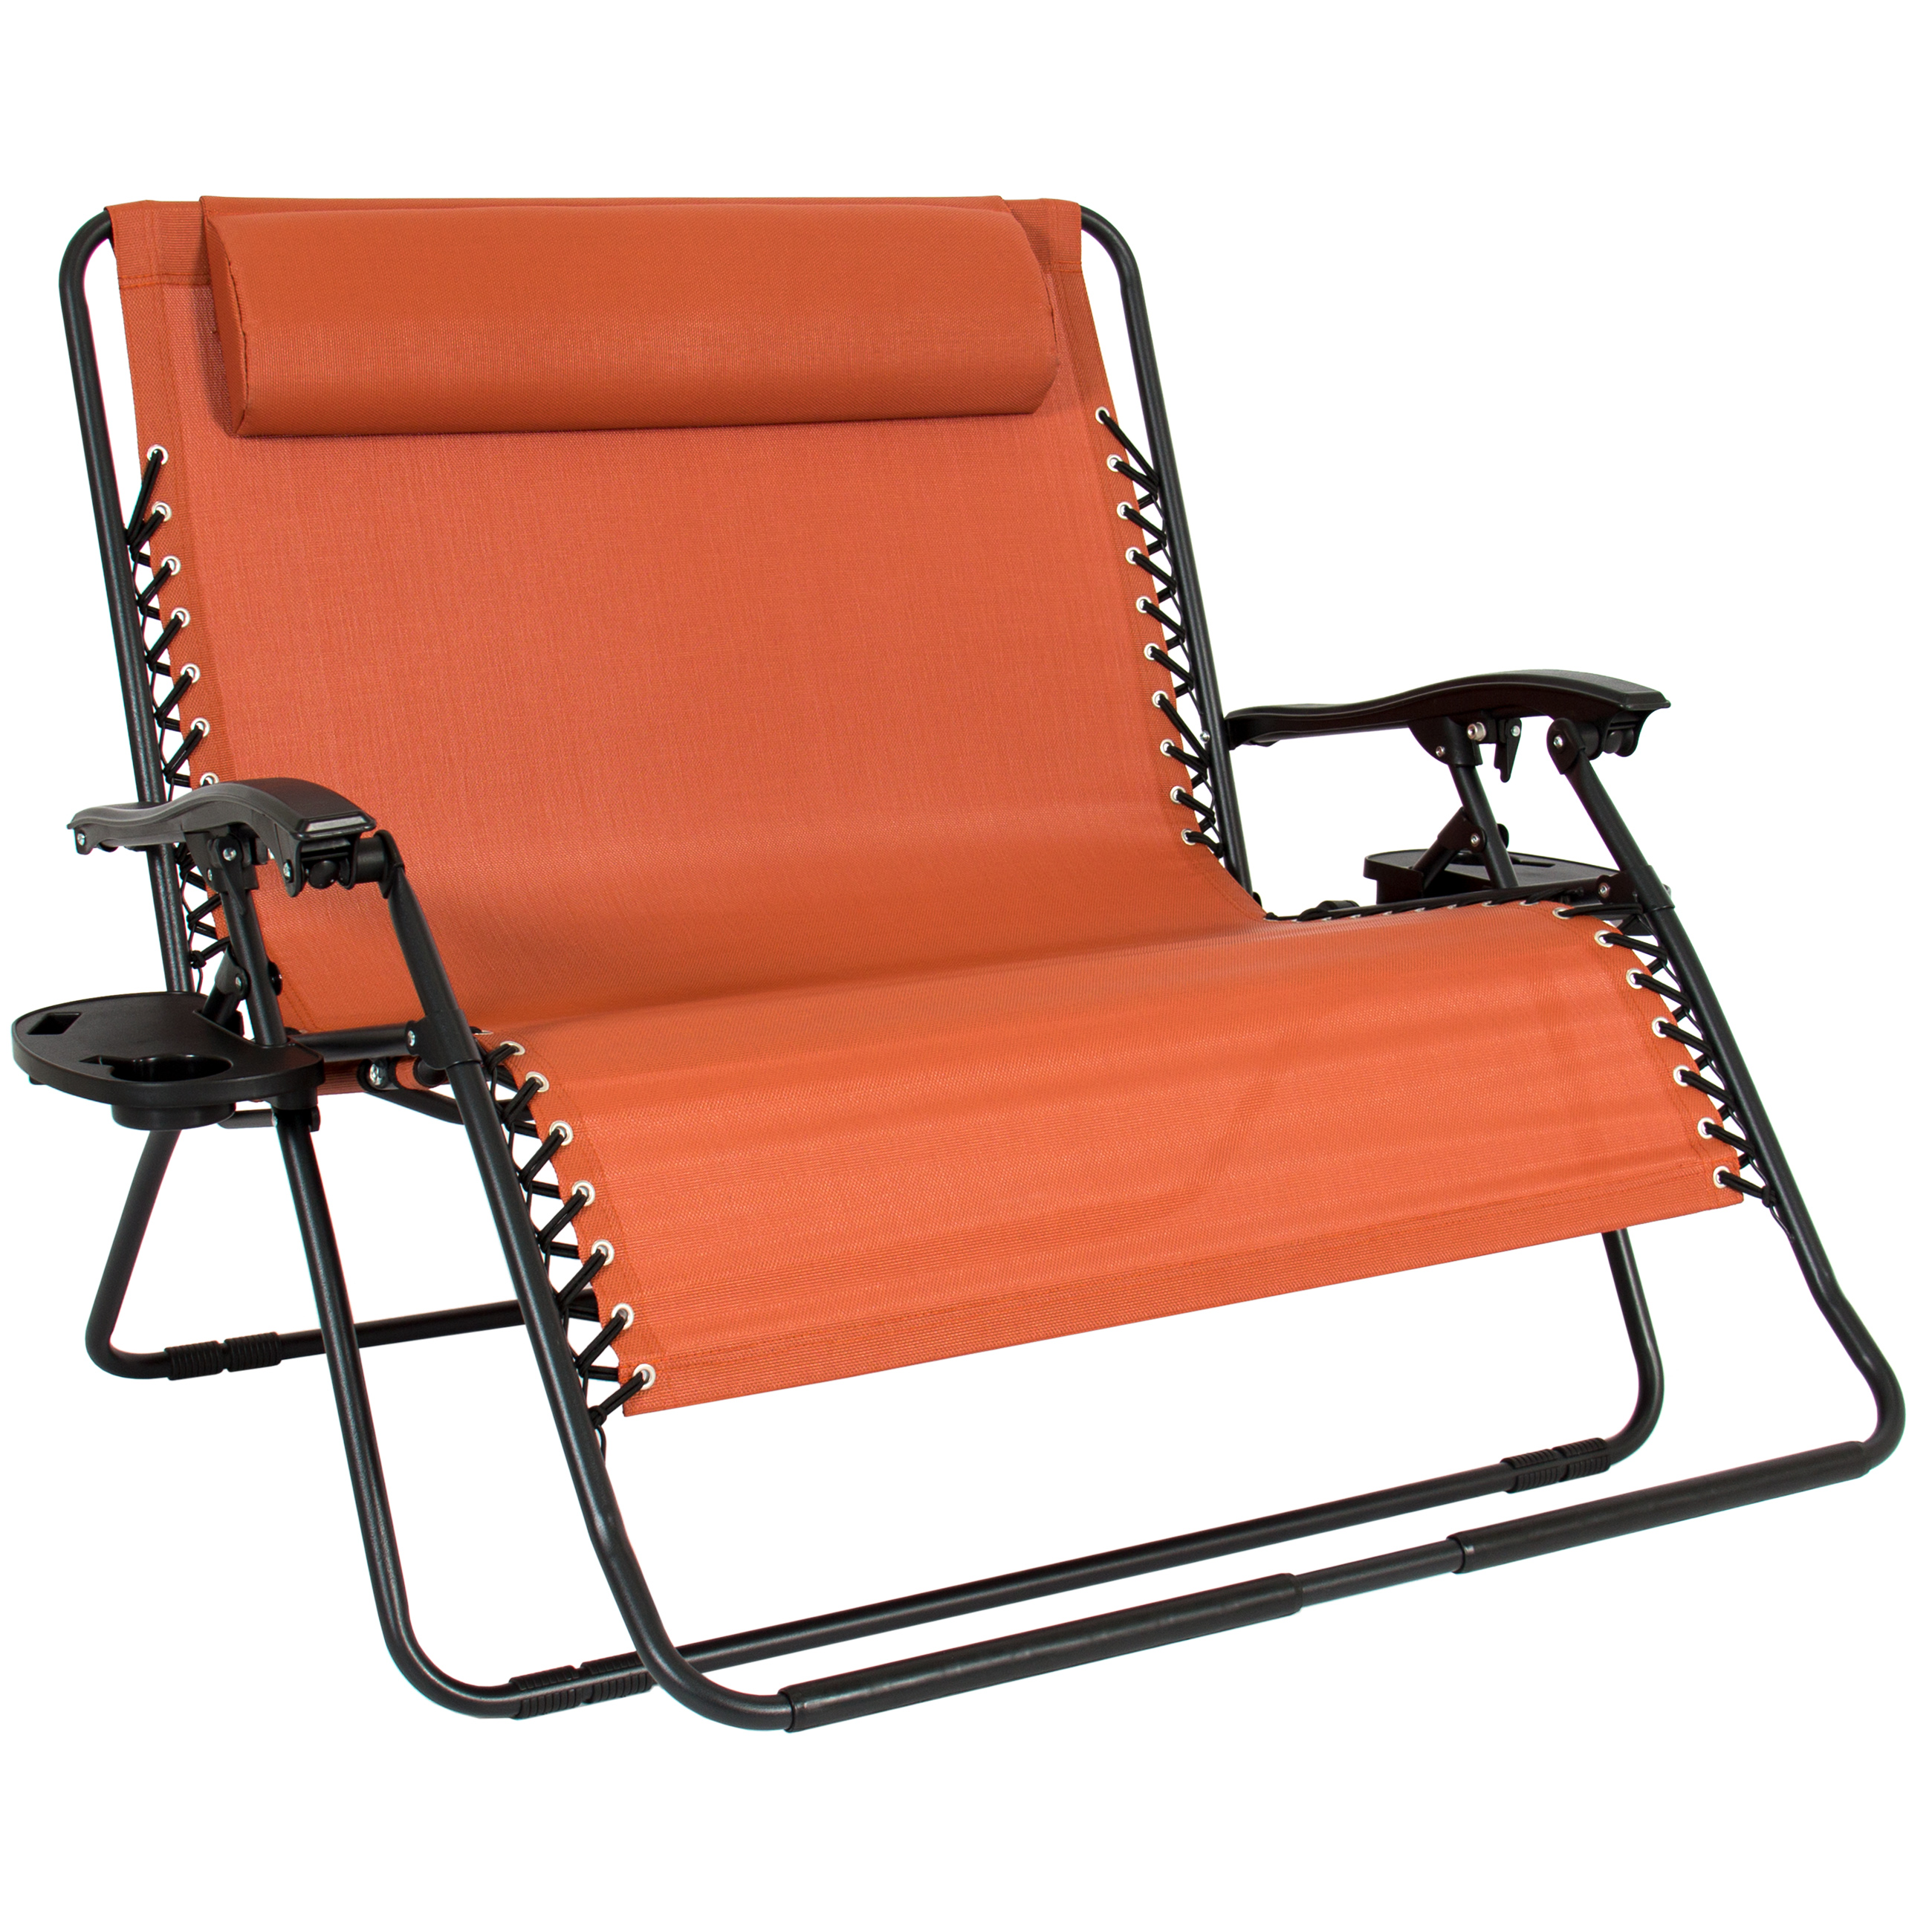 Best Choice Products 2-Person Double Wide Folding Zero Gravity Chair Patio Lounger w/ Cup Holders - Terracotta Orange